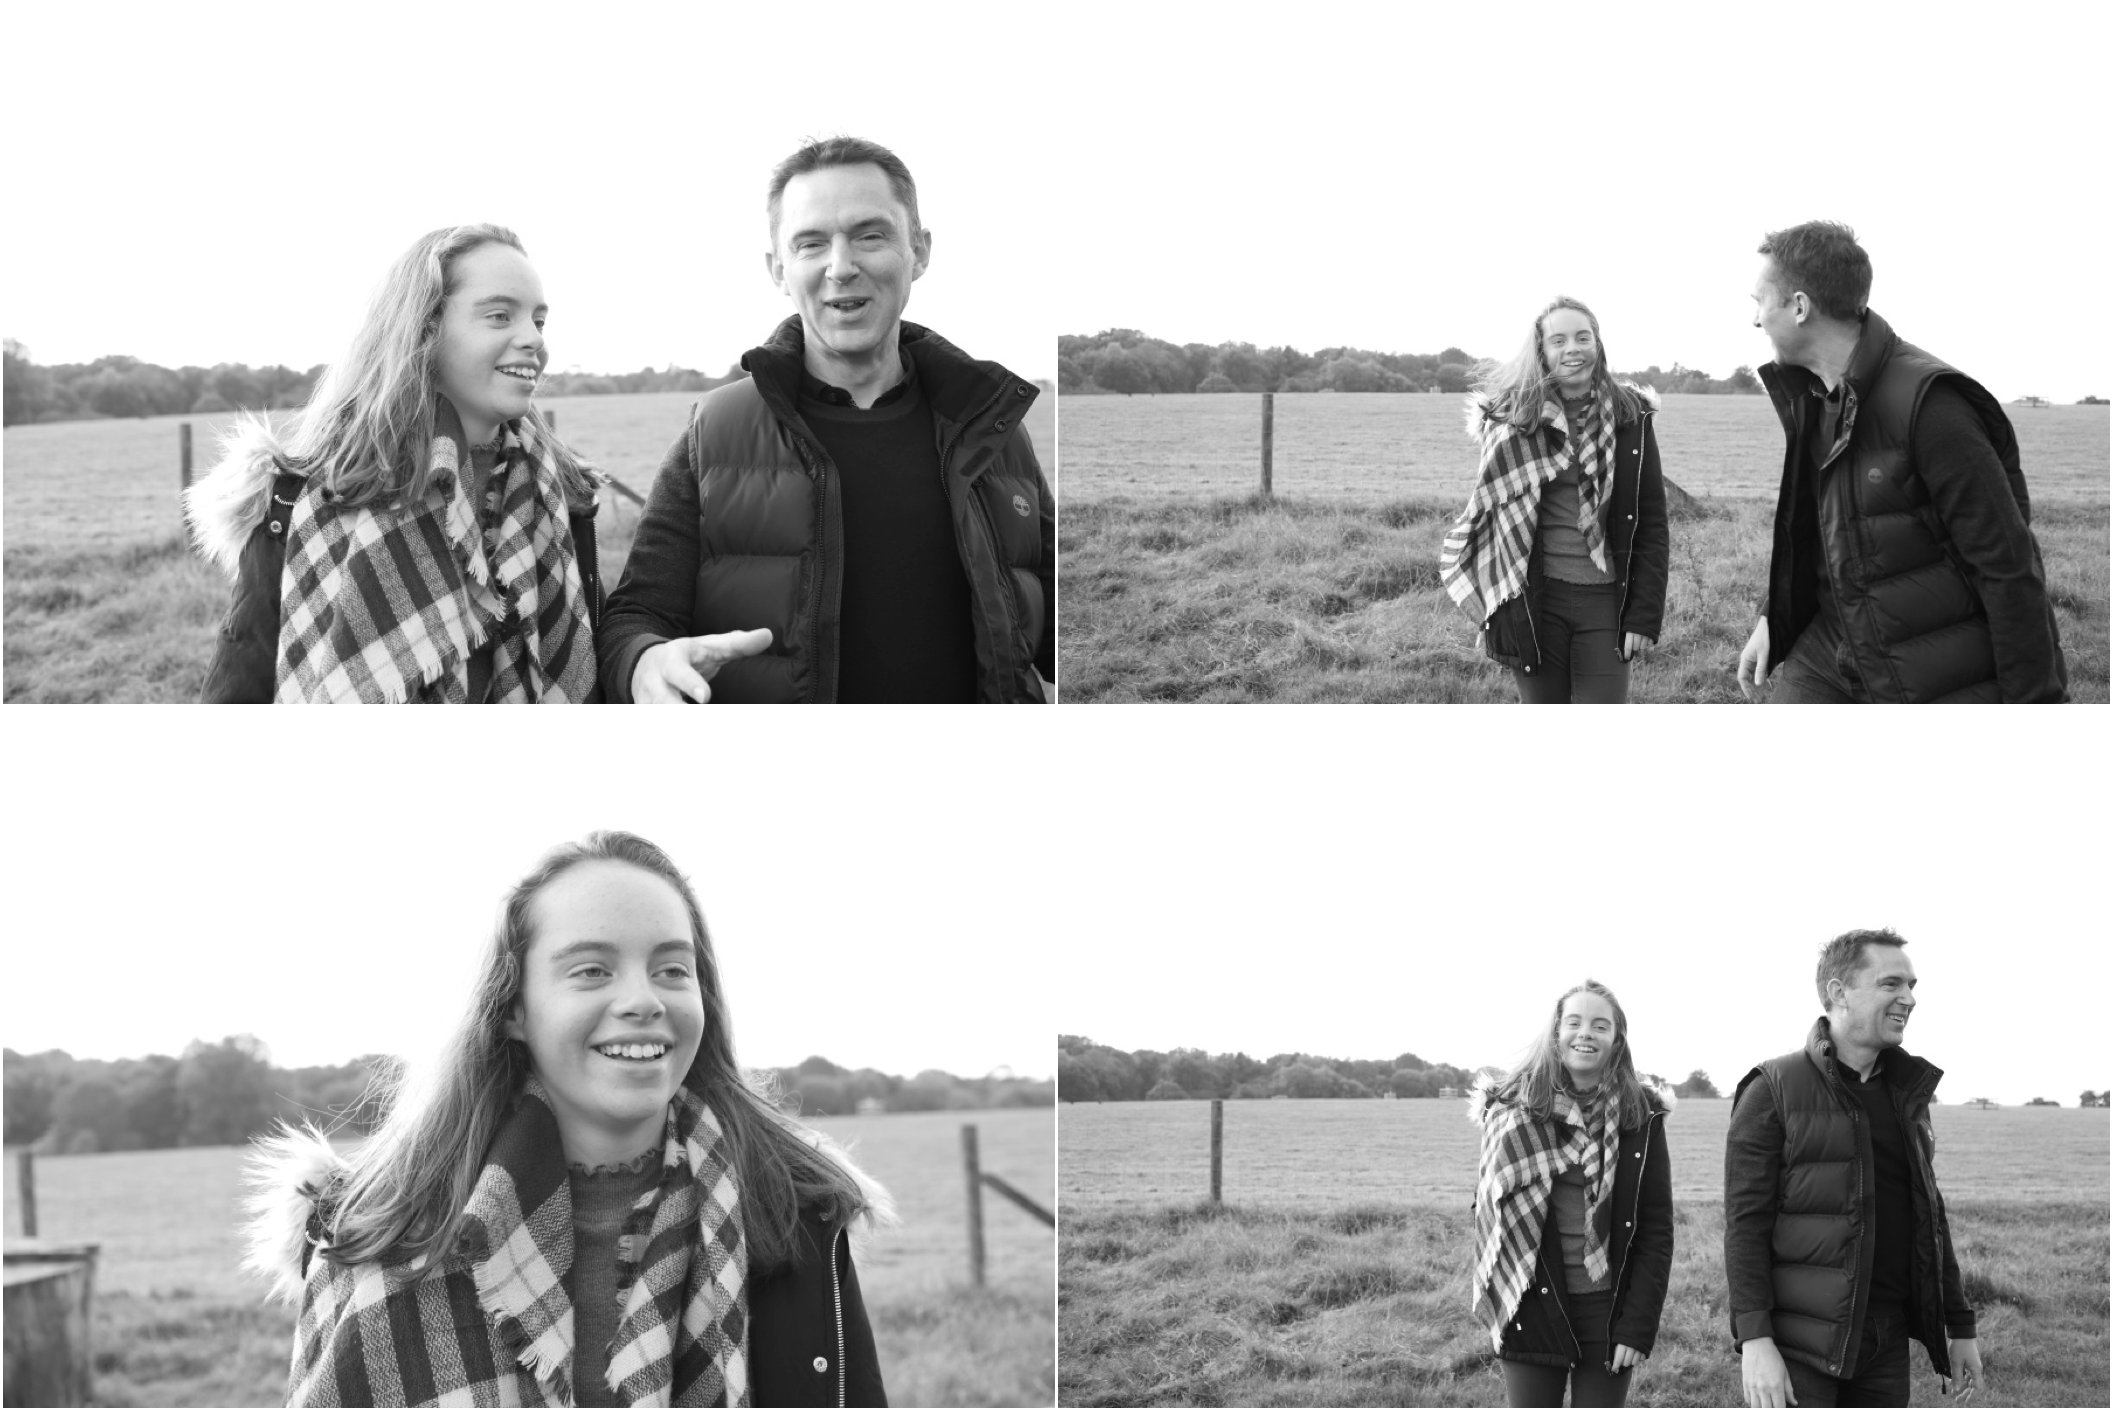 relaxed father and daughter portrait photography, in countryside in suffolk. black and white photography